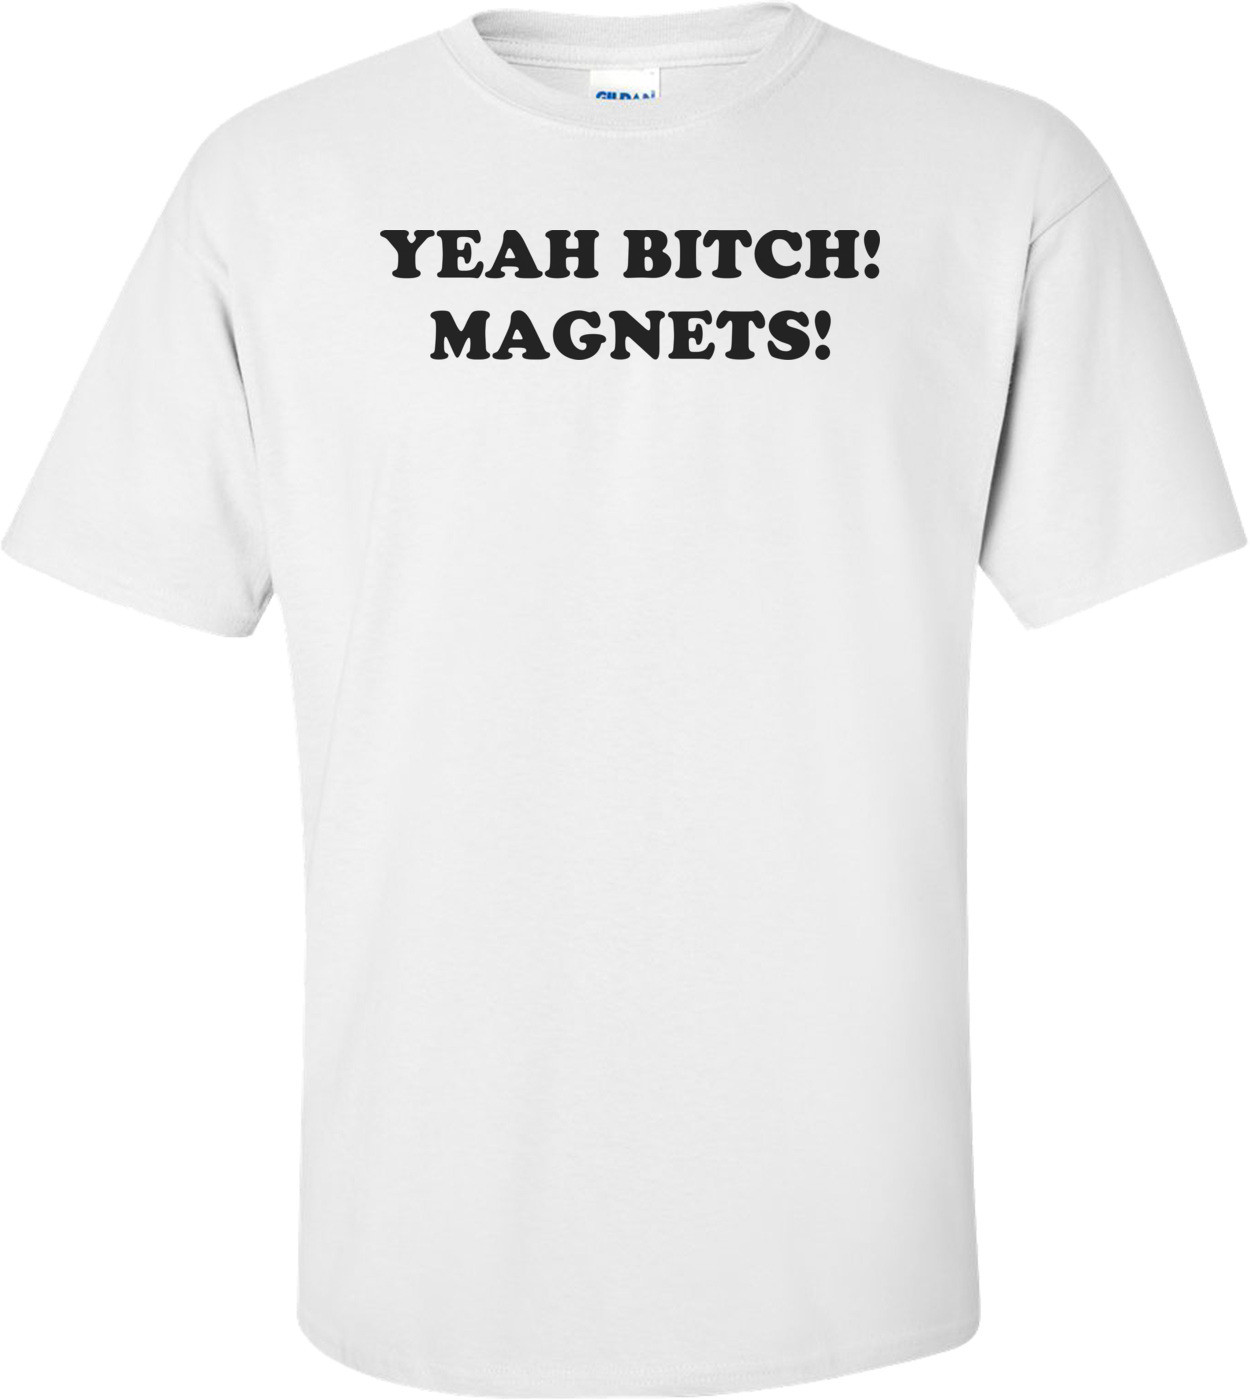 YEAH BITCH! MAGNETS! Shirt